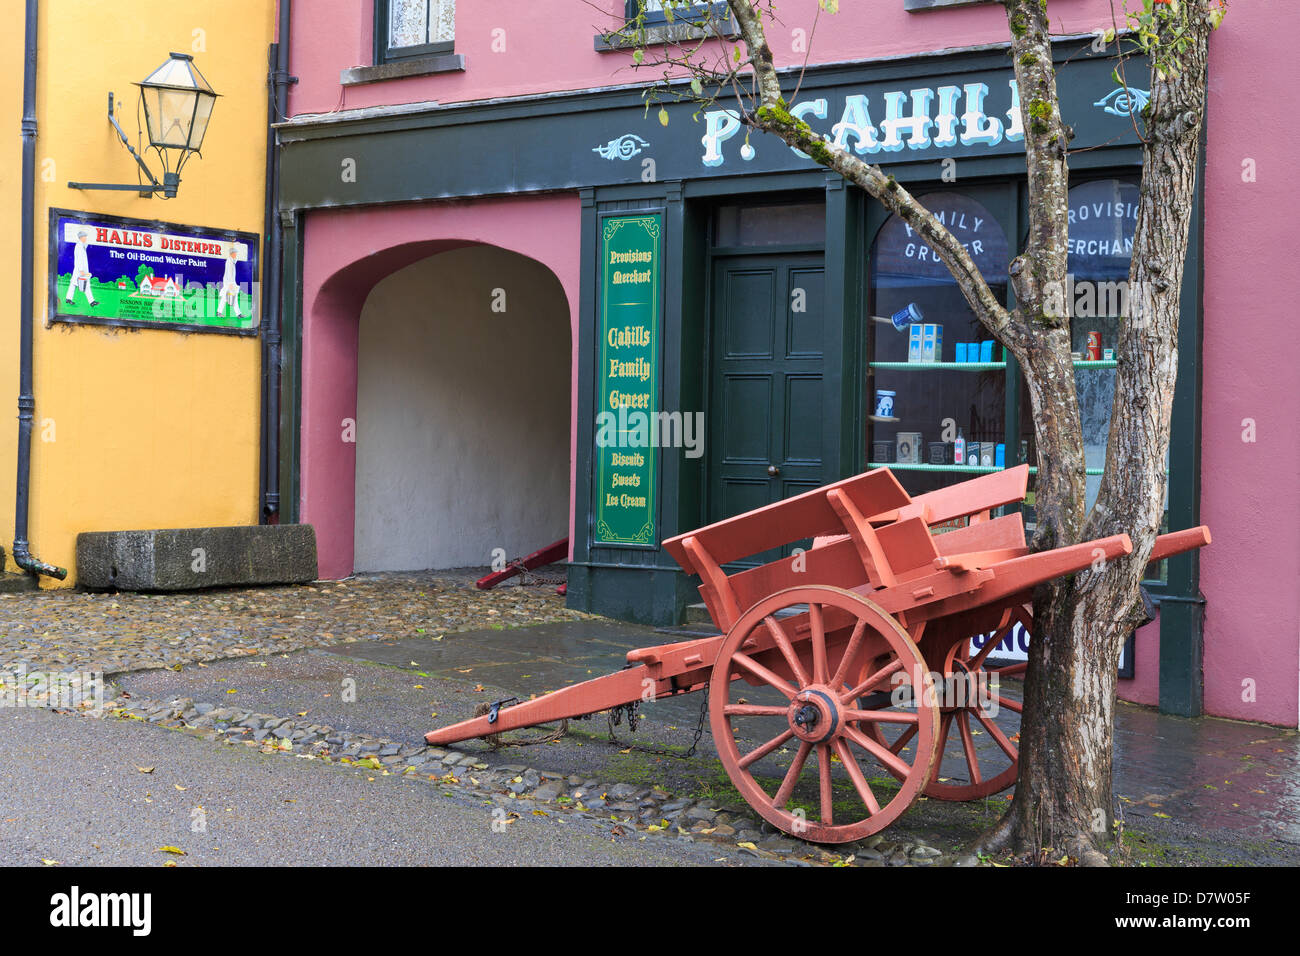 Bunratty Castle and Folk Park, County Clare, Munster, Republic of Ireland - Stock Image